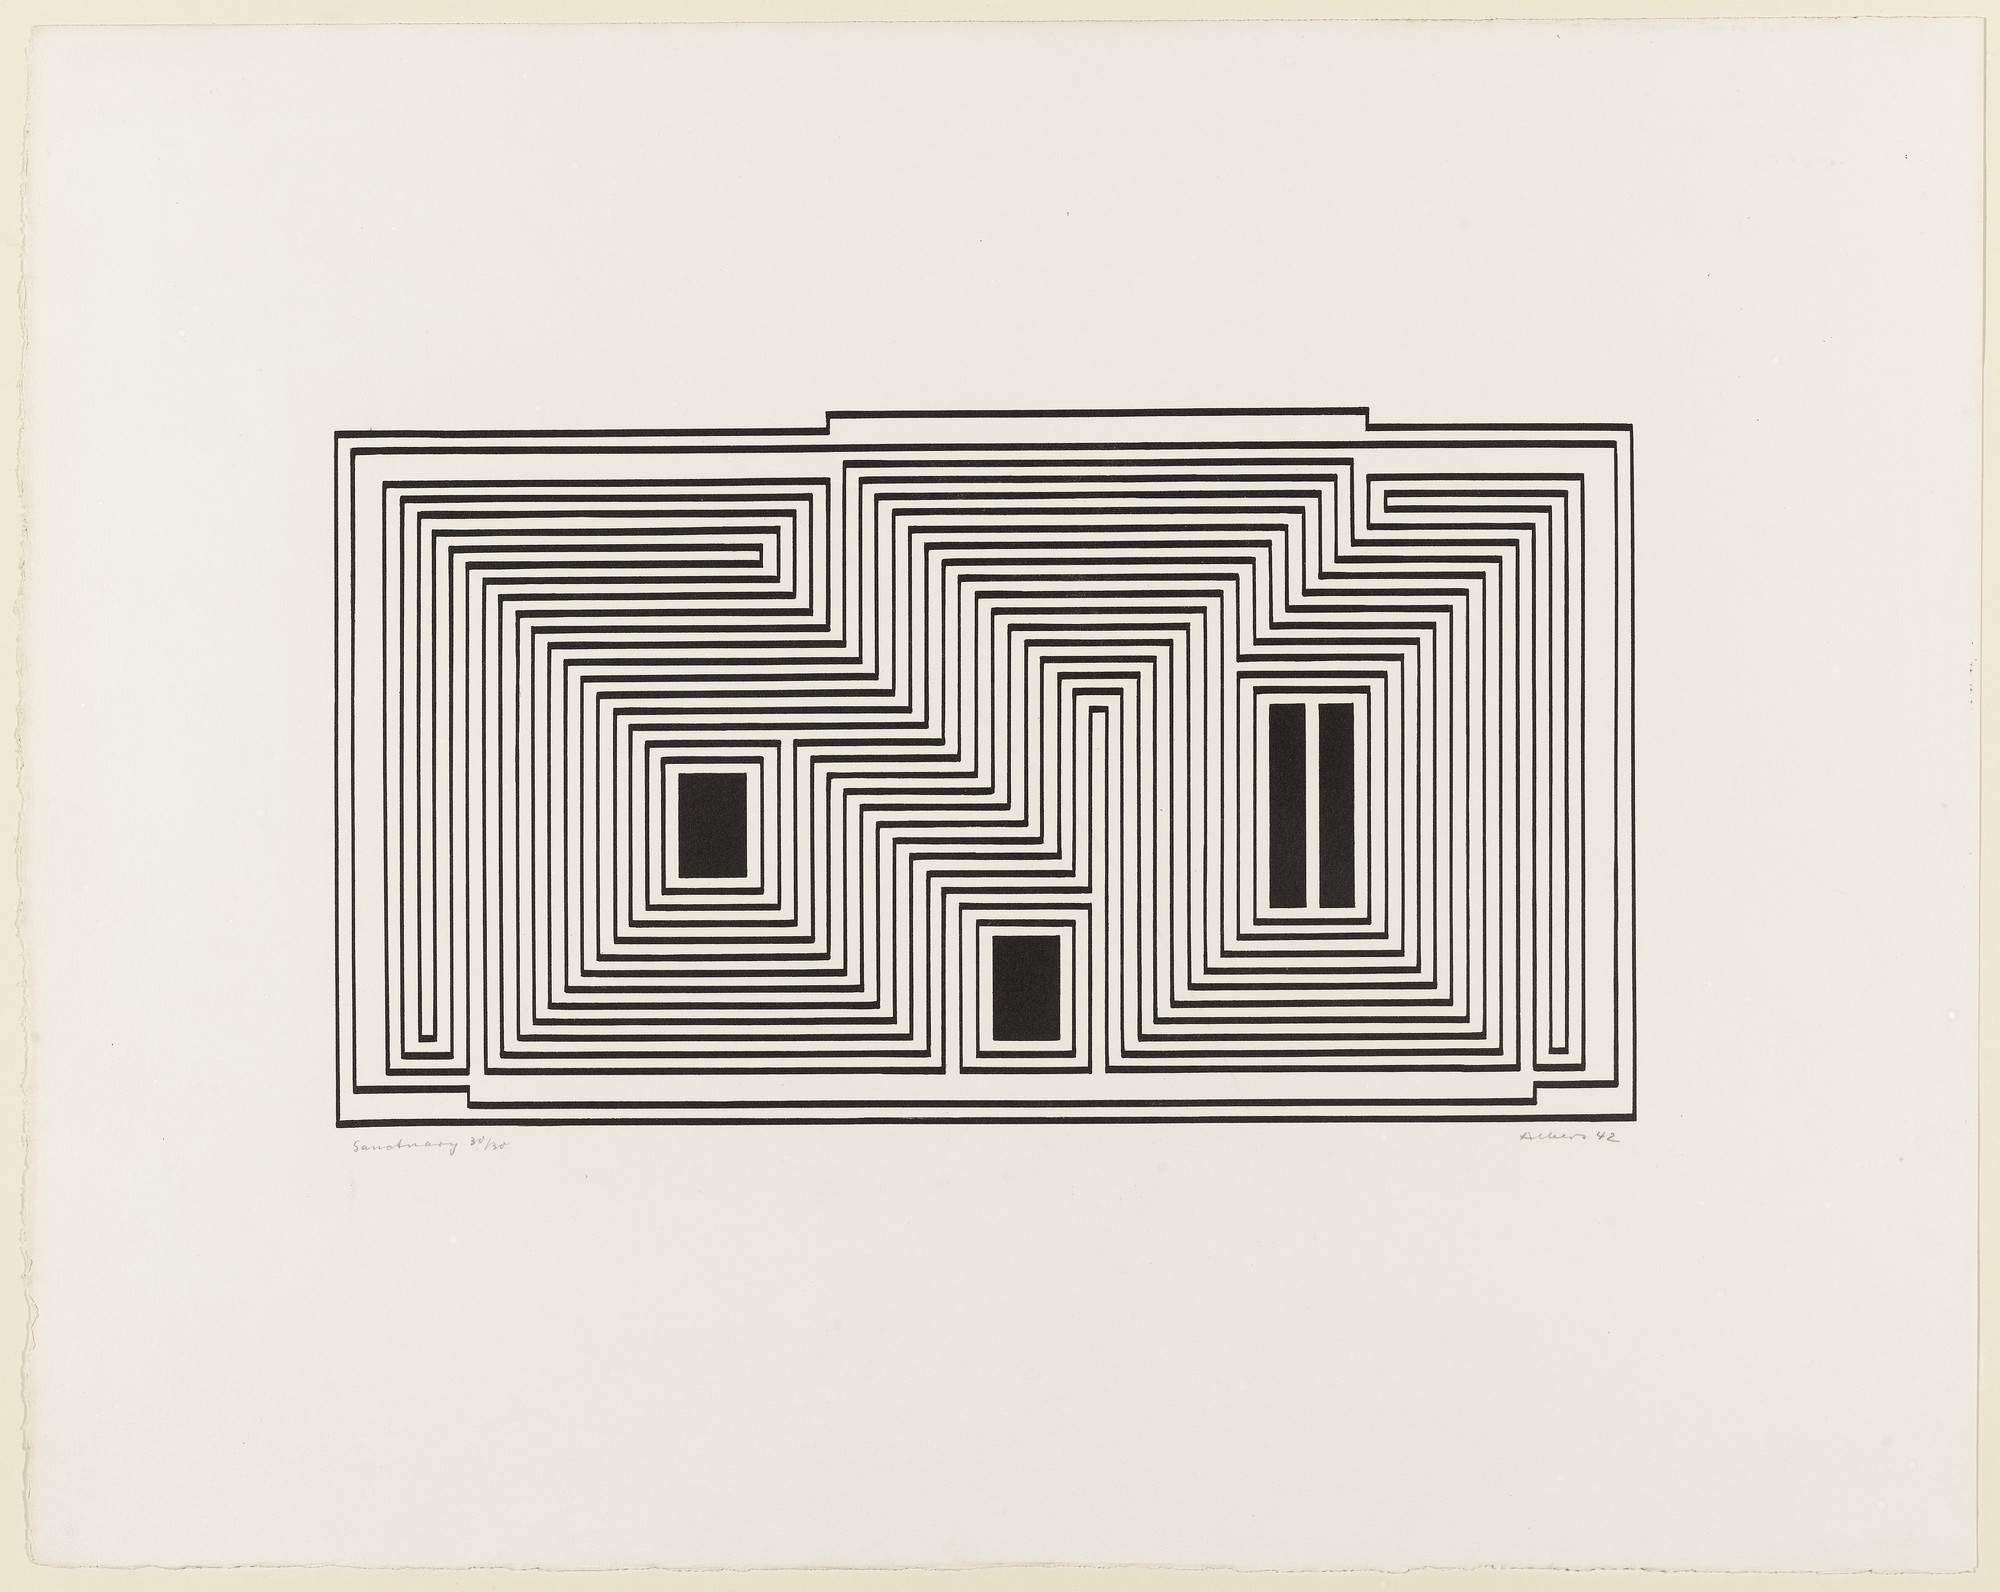 Josef Albers. Sanctuary from the series Graphic Tectonic. 1942